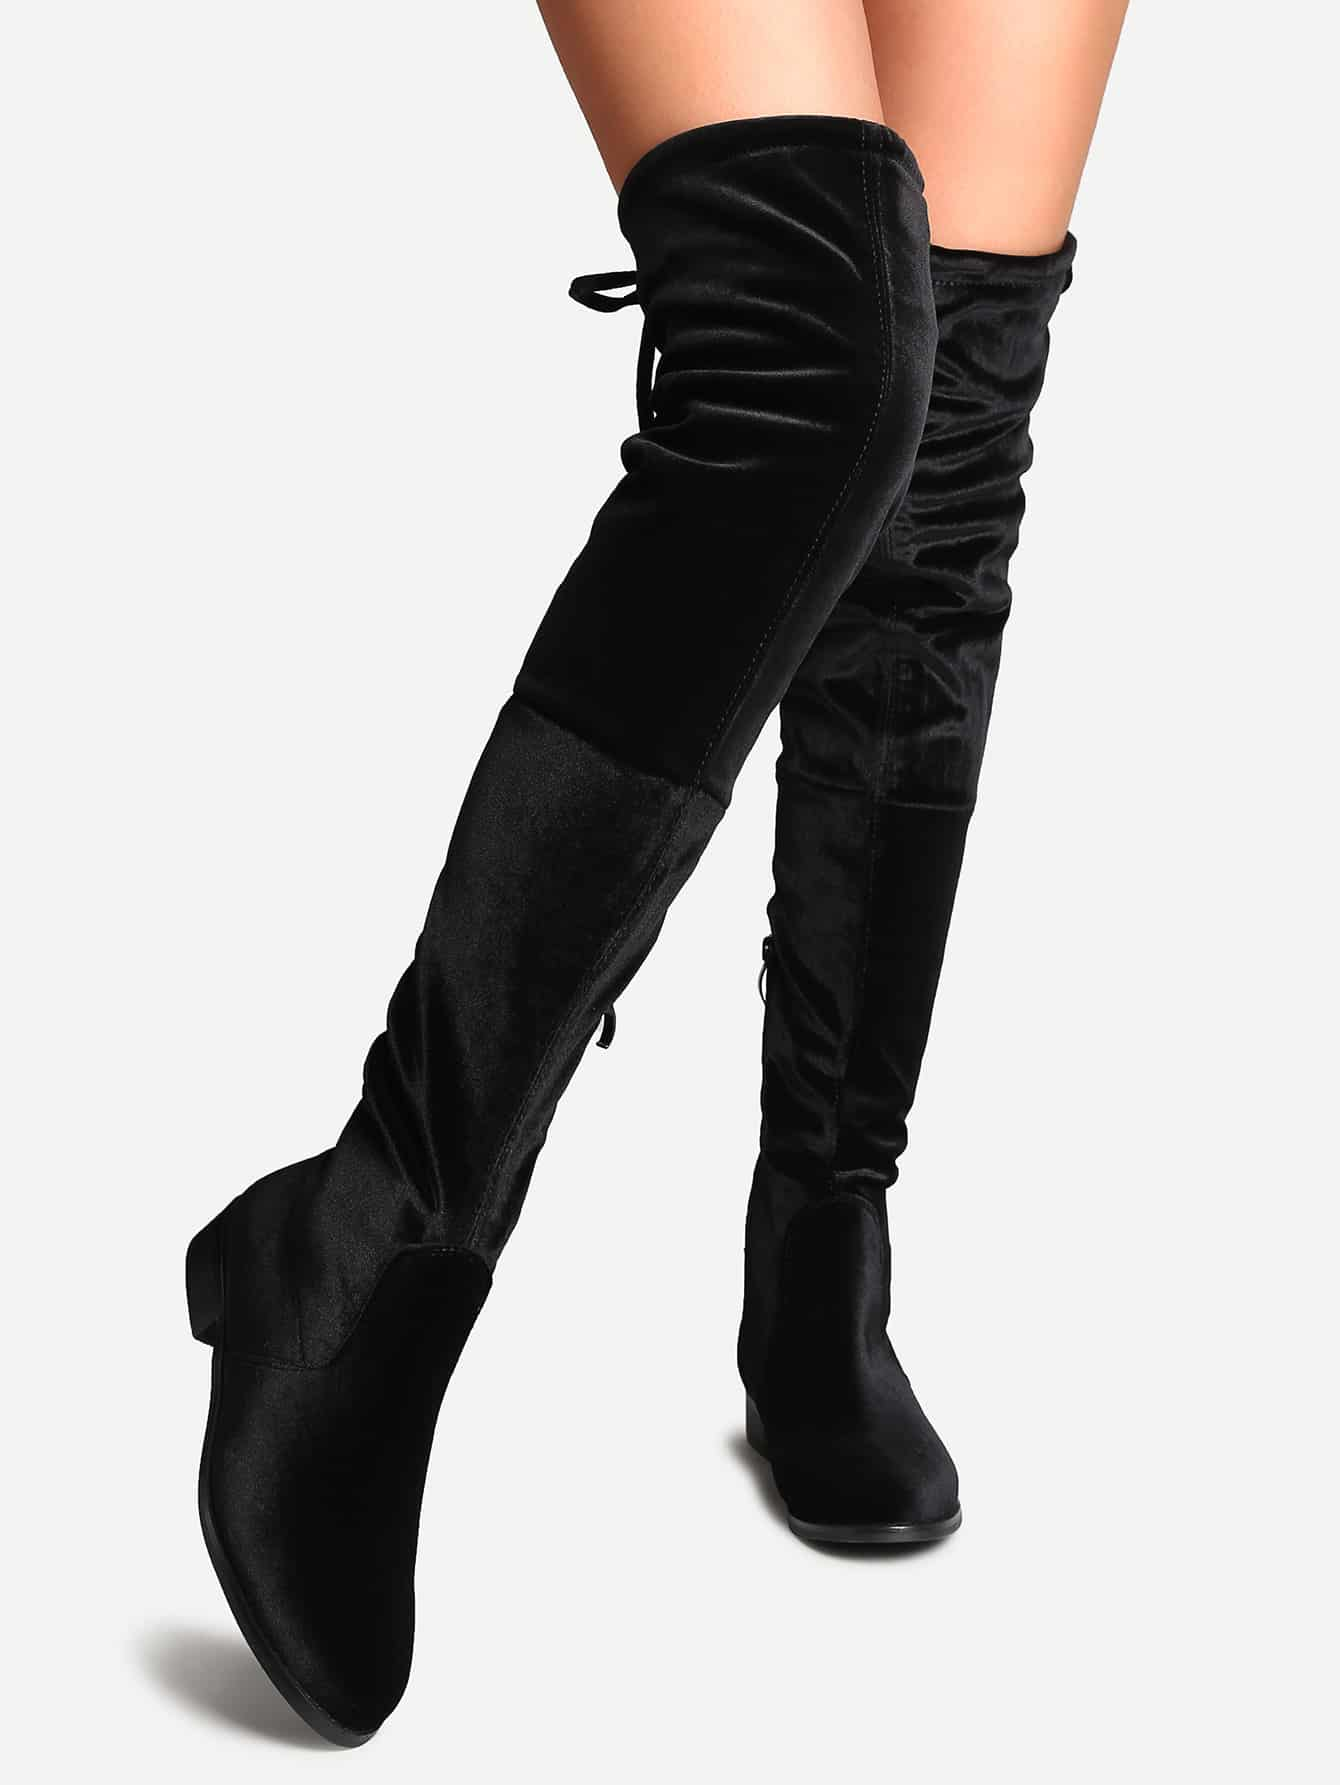 Black Faux Suede Side Zipper Tie Back Over The Knee Boots shoes161005811